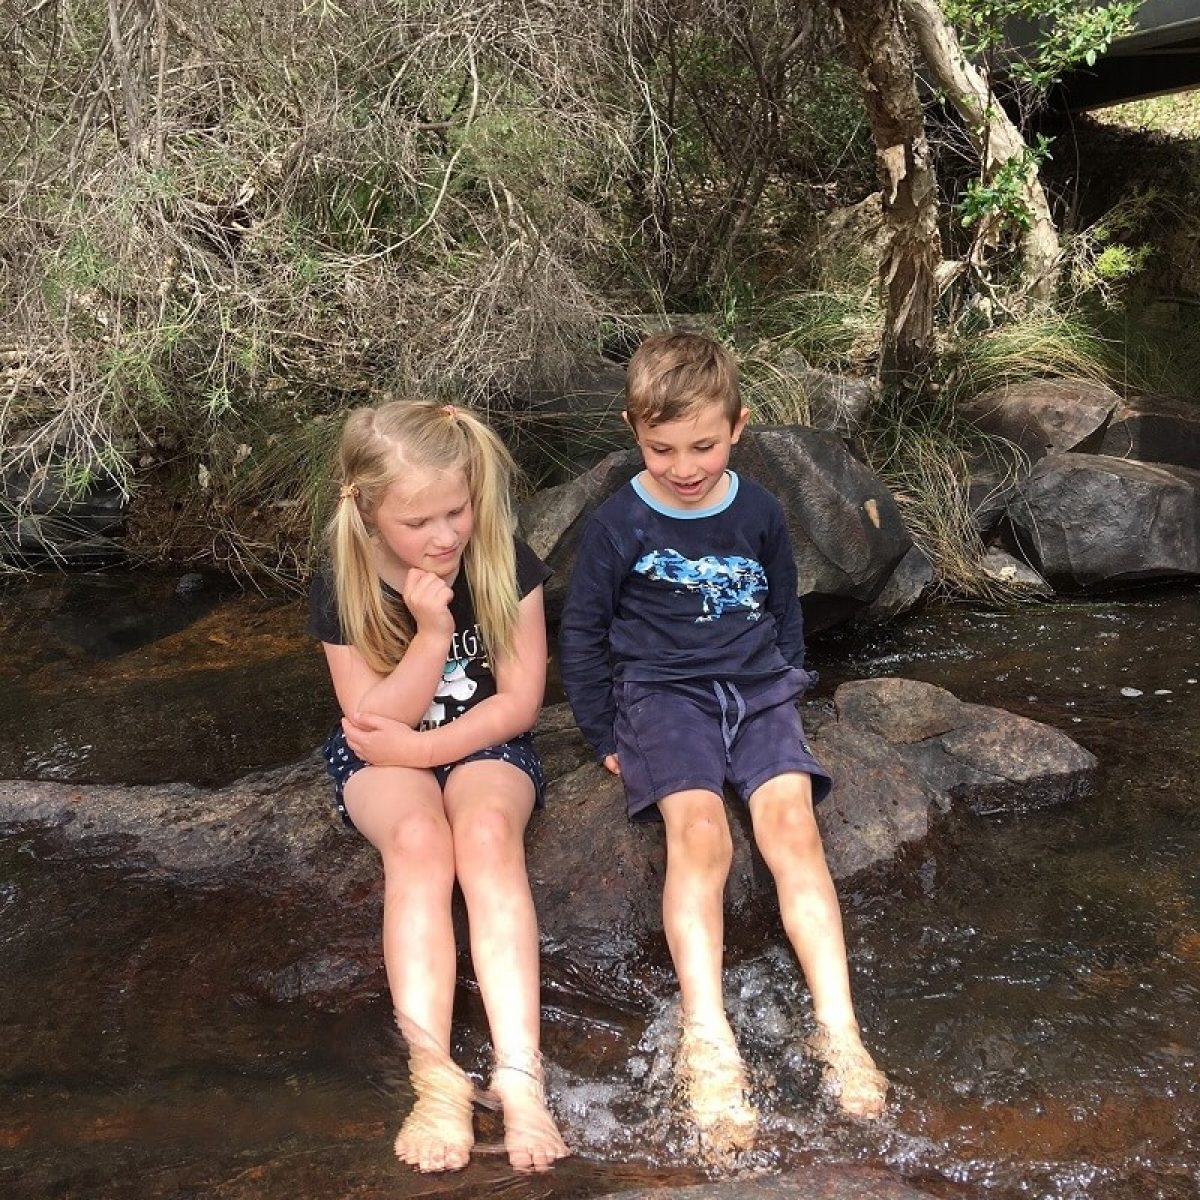 John Forrest National Park stream fun for families